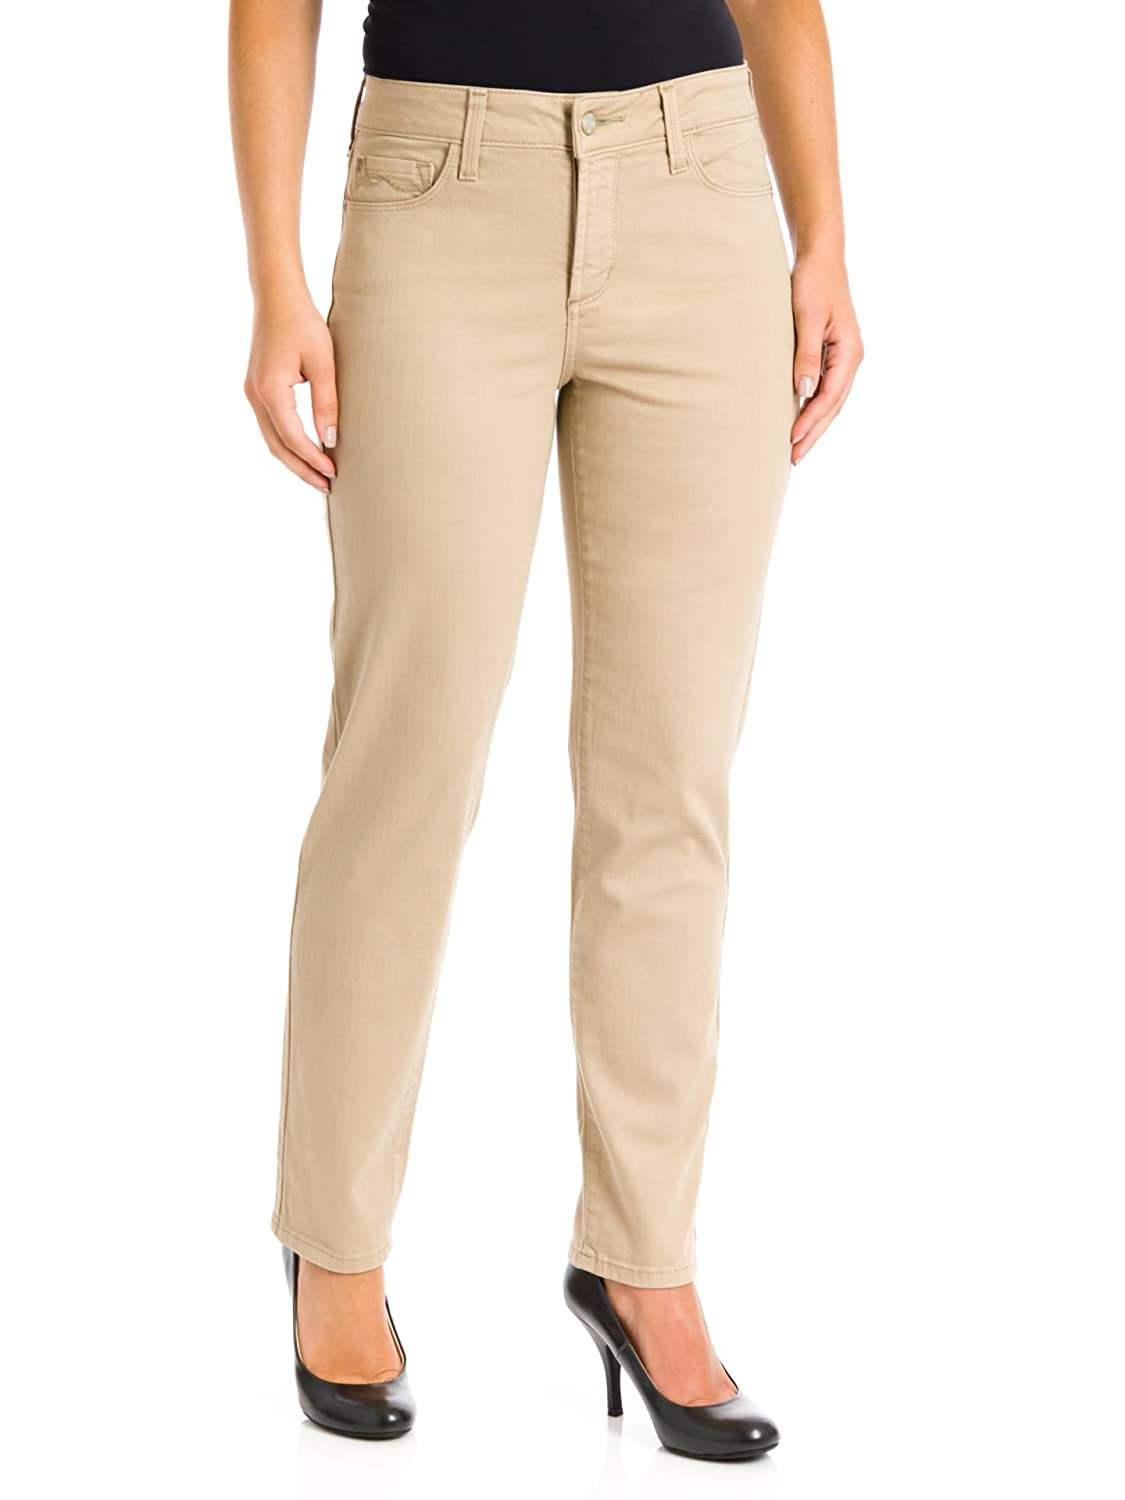 NYDJ Women's Alisha Fitted Ankle Jeans Almond